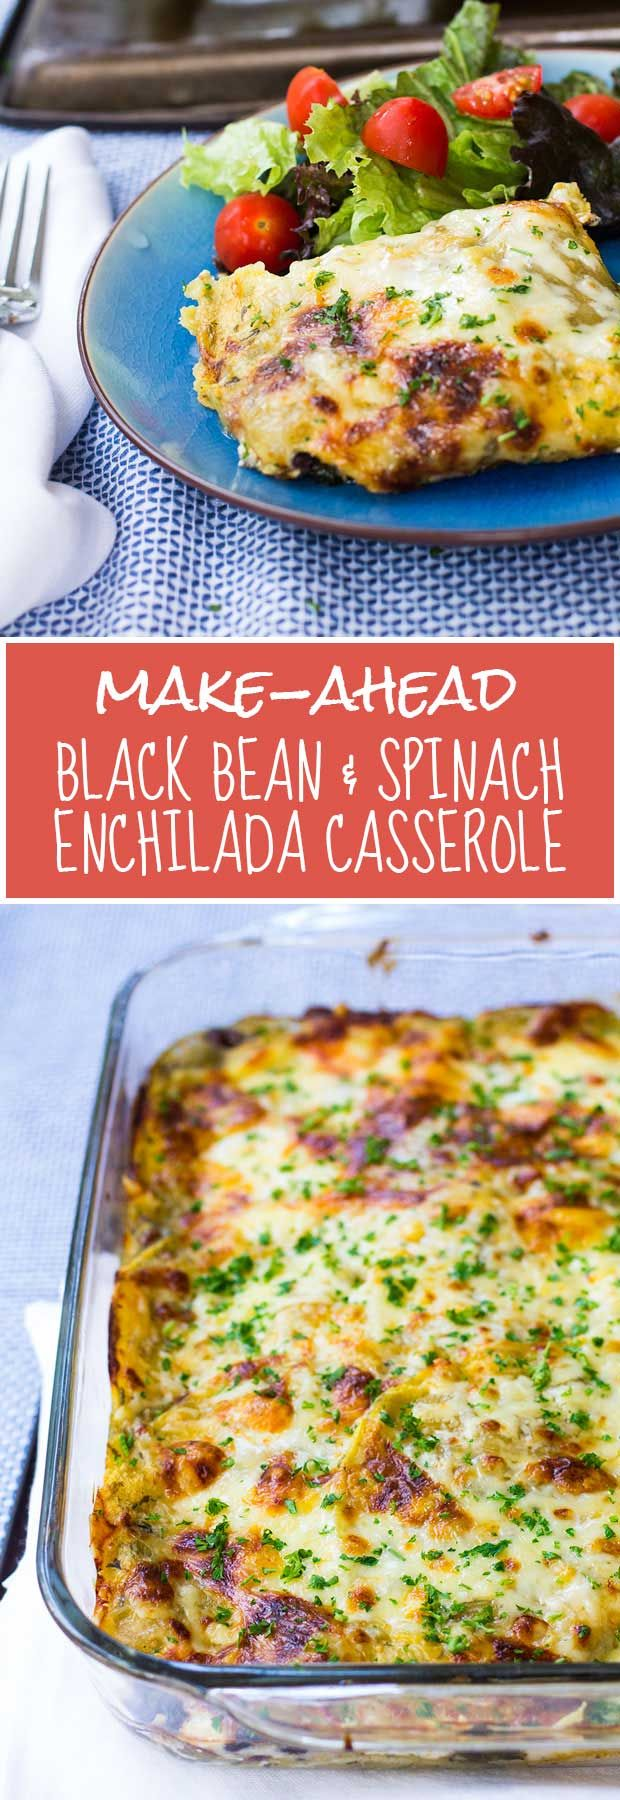 Make-Ahead Black Bean & Enchilada Casserole -- an easy, gluten-free, healthy, kid-friendly make-ahead meal! | www.kiwiandbean.com